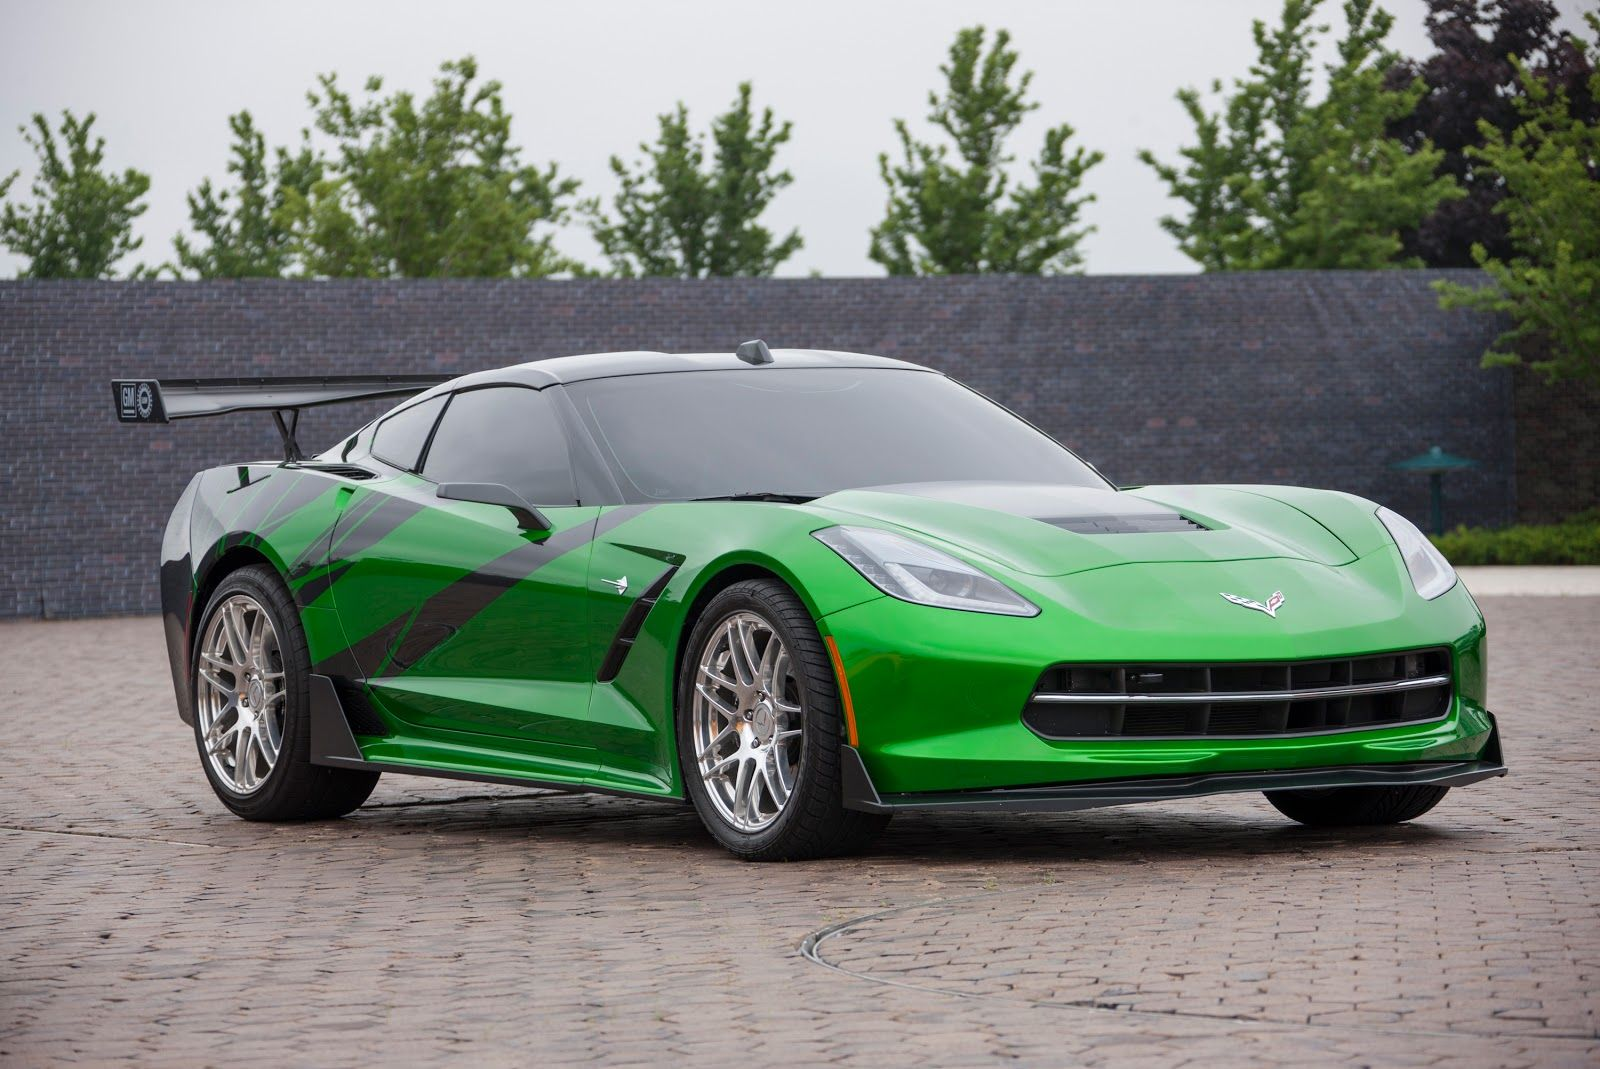 Green 2014 Chevrolet Corvette C7 Stingray Cars Chevrolet